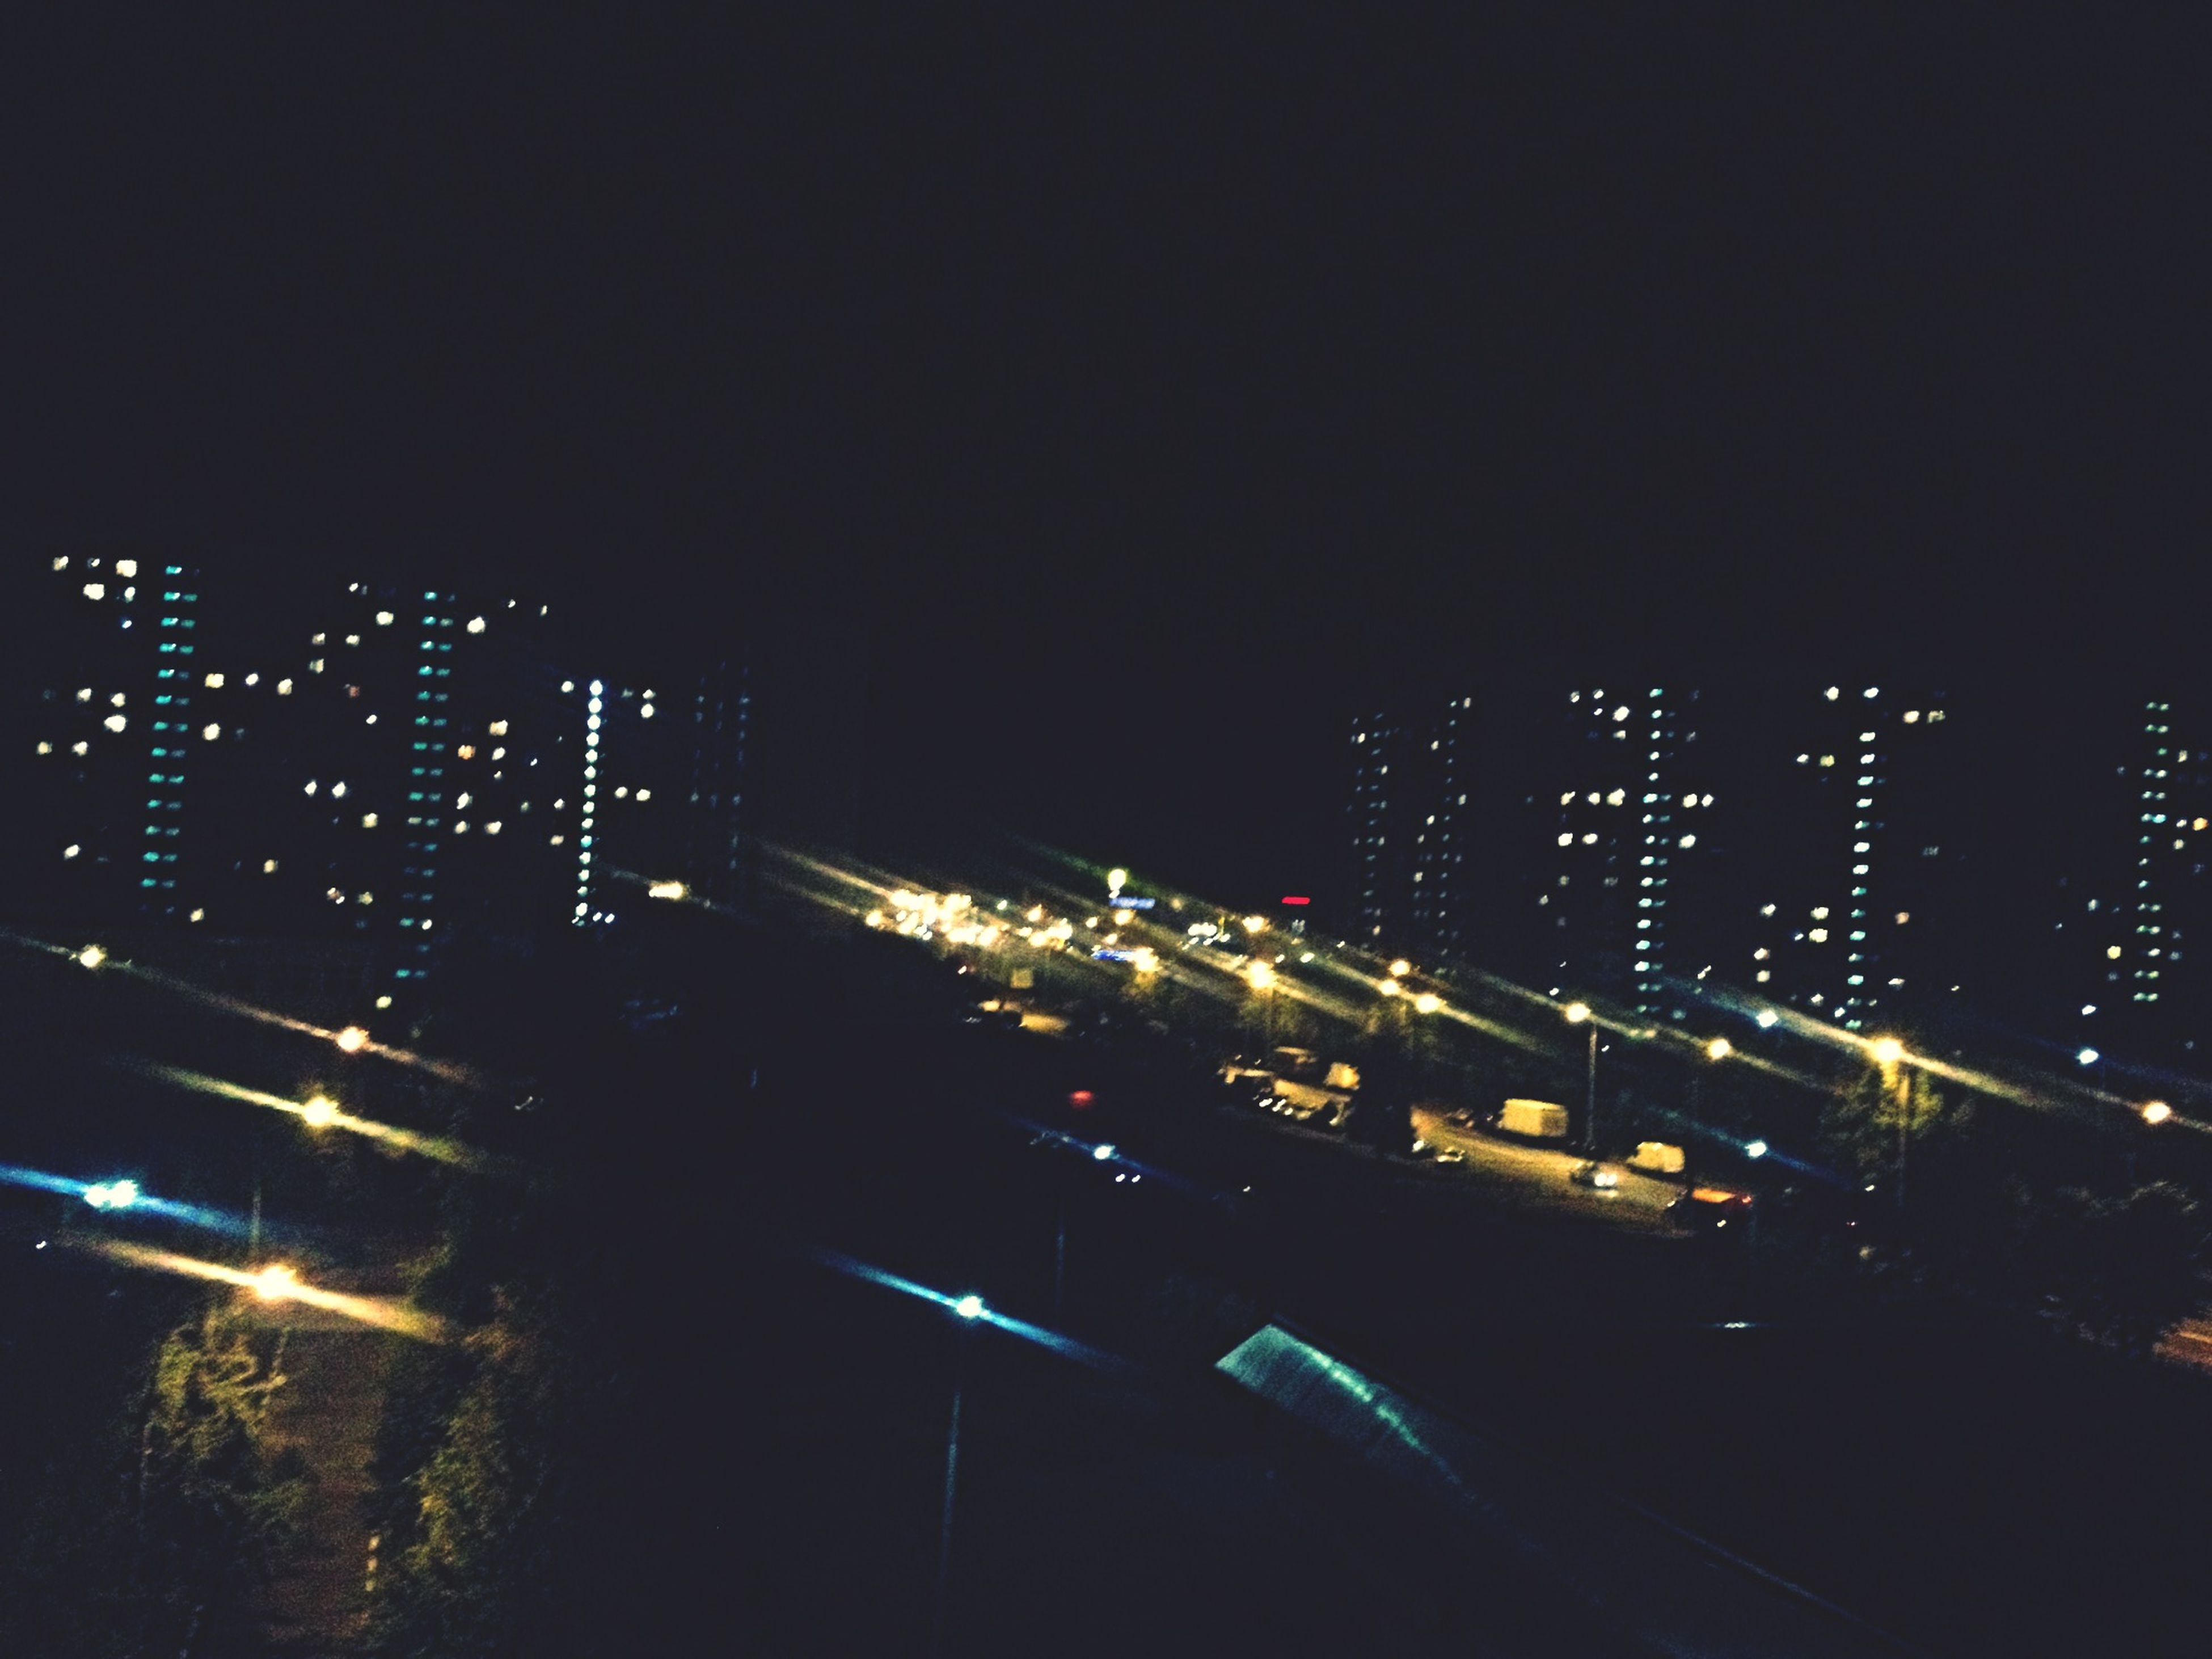 illuminated, night, building exterior, city, architecture, built structure, skyscraper, tall - high, modern, office building, city life, tower, high angle view, cityscape, development, transportation, building, outdoors, street, light - natural phenomenon